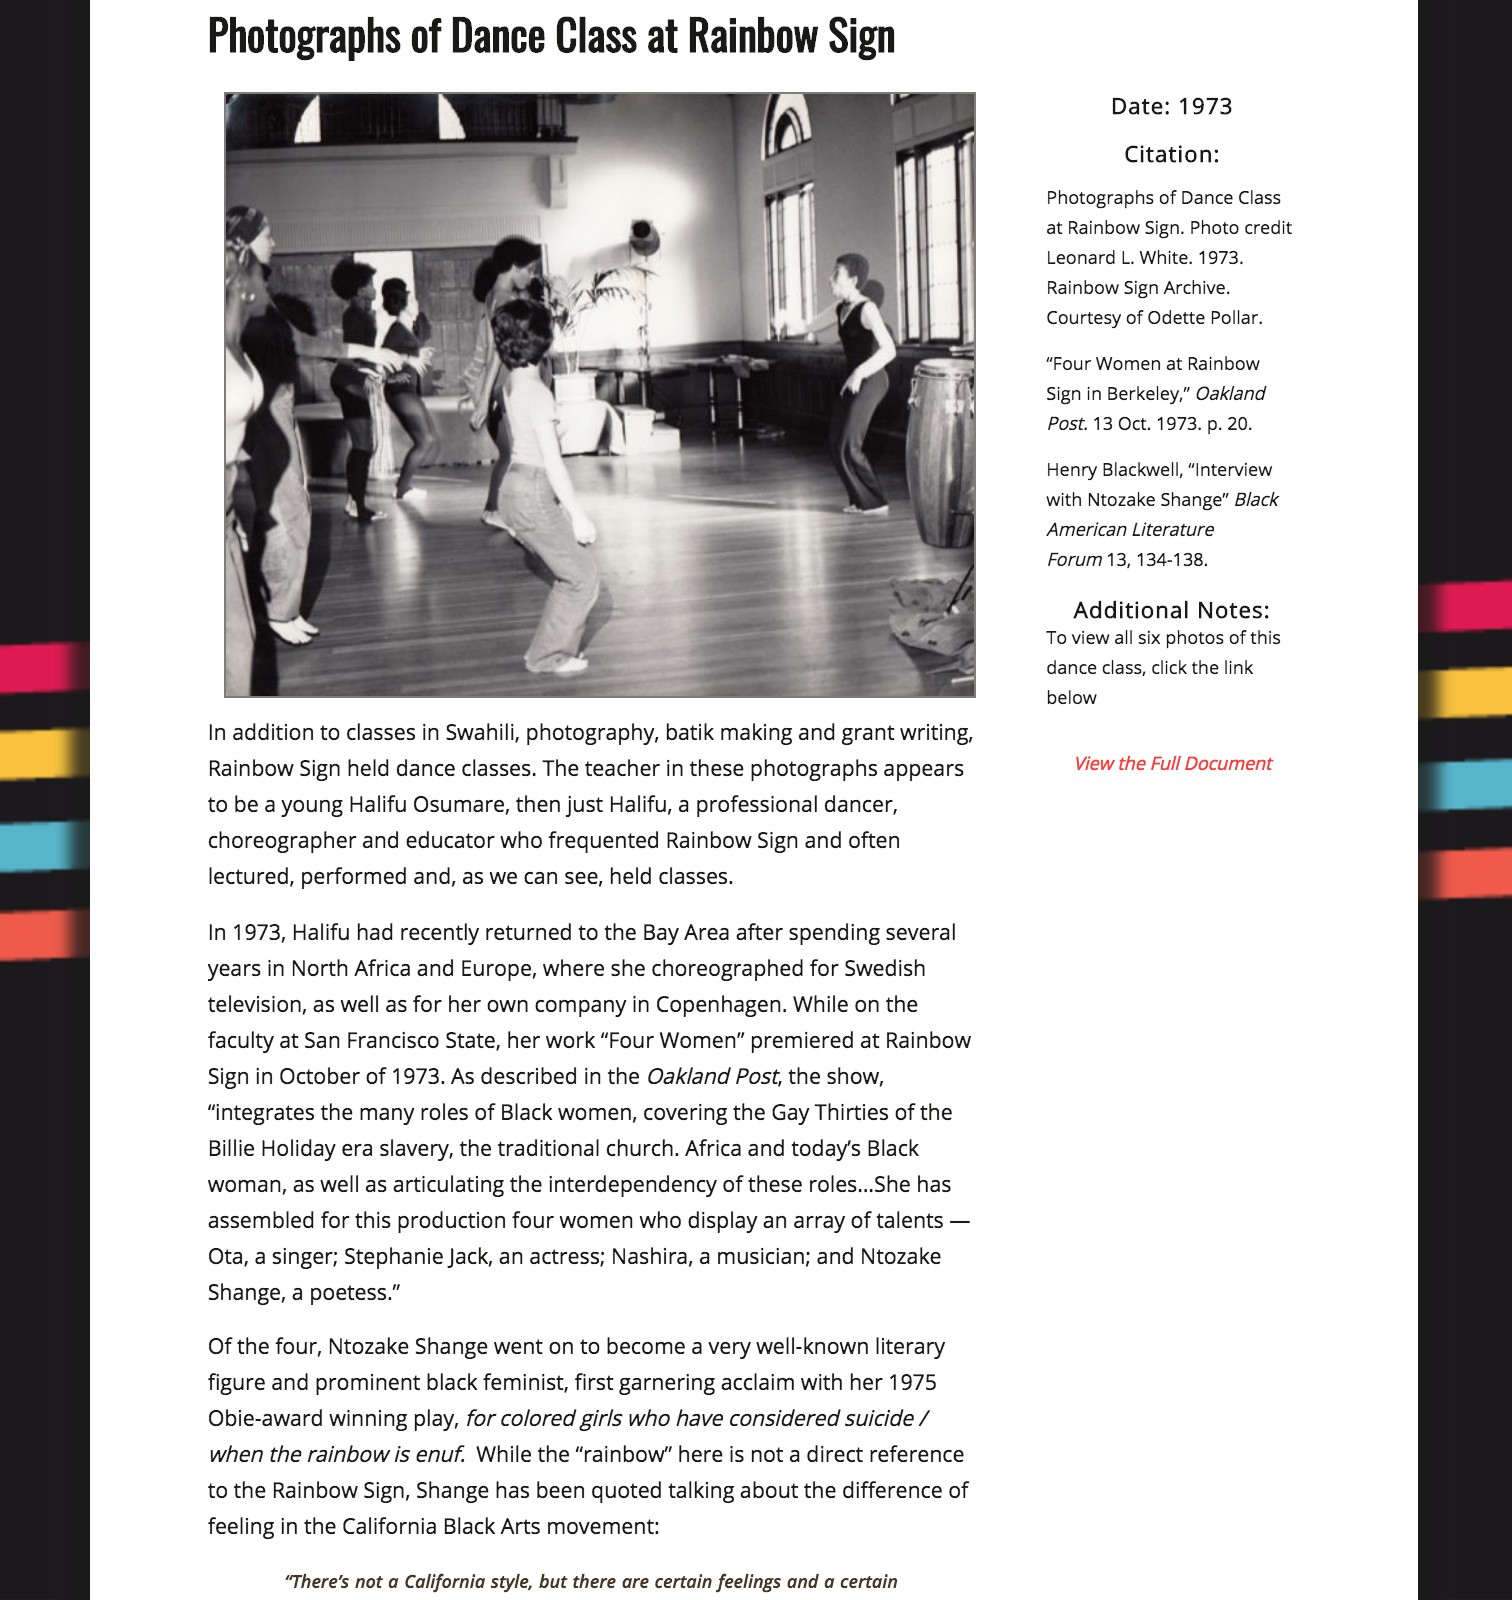 Screenshot showing one of the annotated sources used in the Rainbow Sign project. This page features a photograph and text about dance classes that took place at Rainbow Sign.